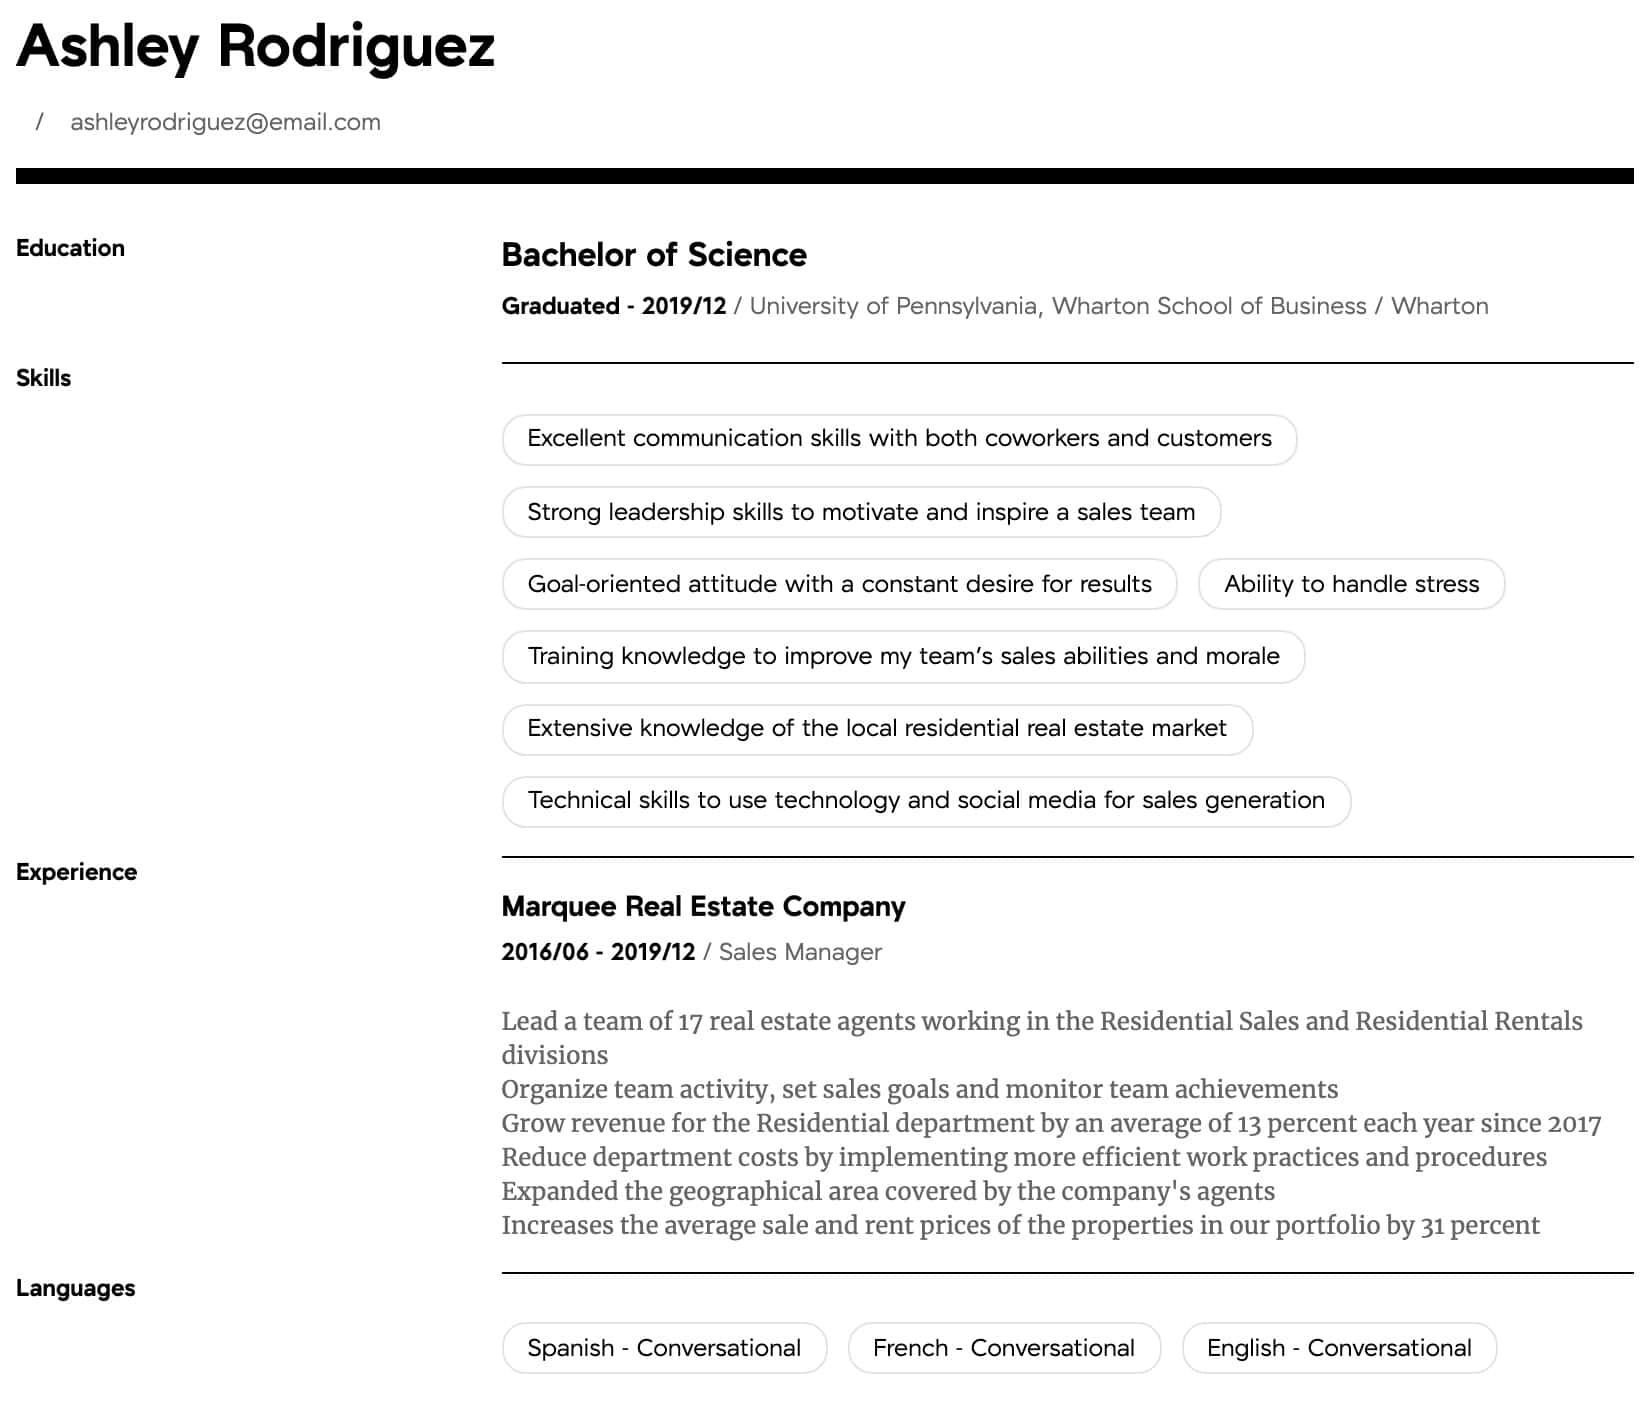 manager resume samples all experience levels business school intermediate basic Resume Wharton Business School Resume